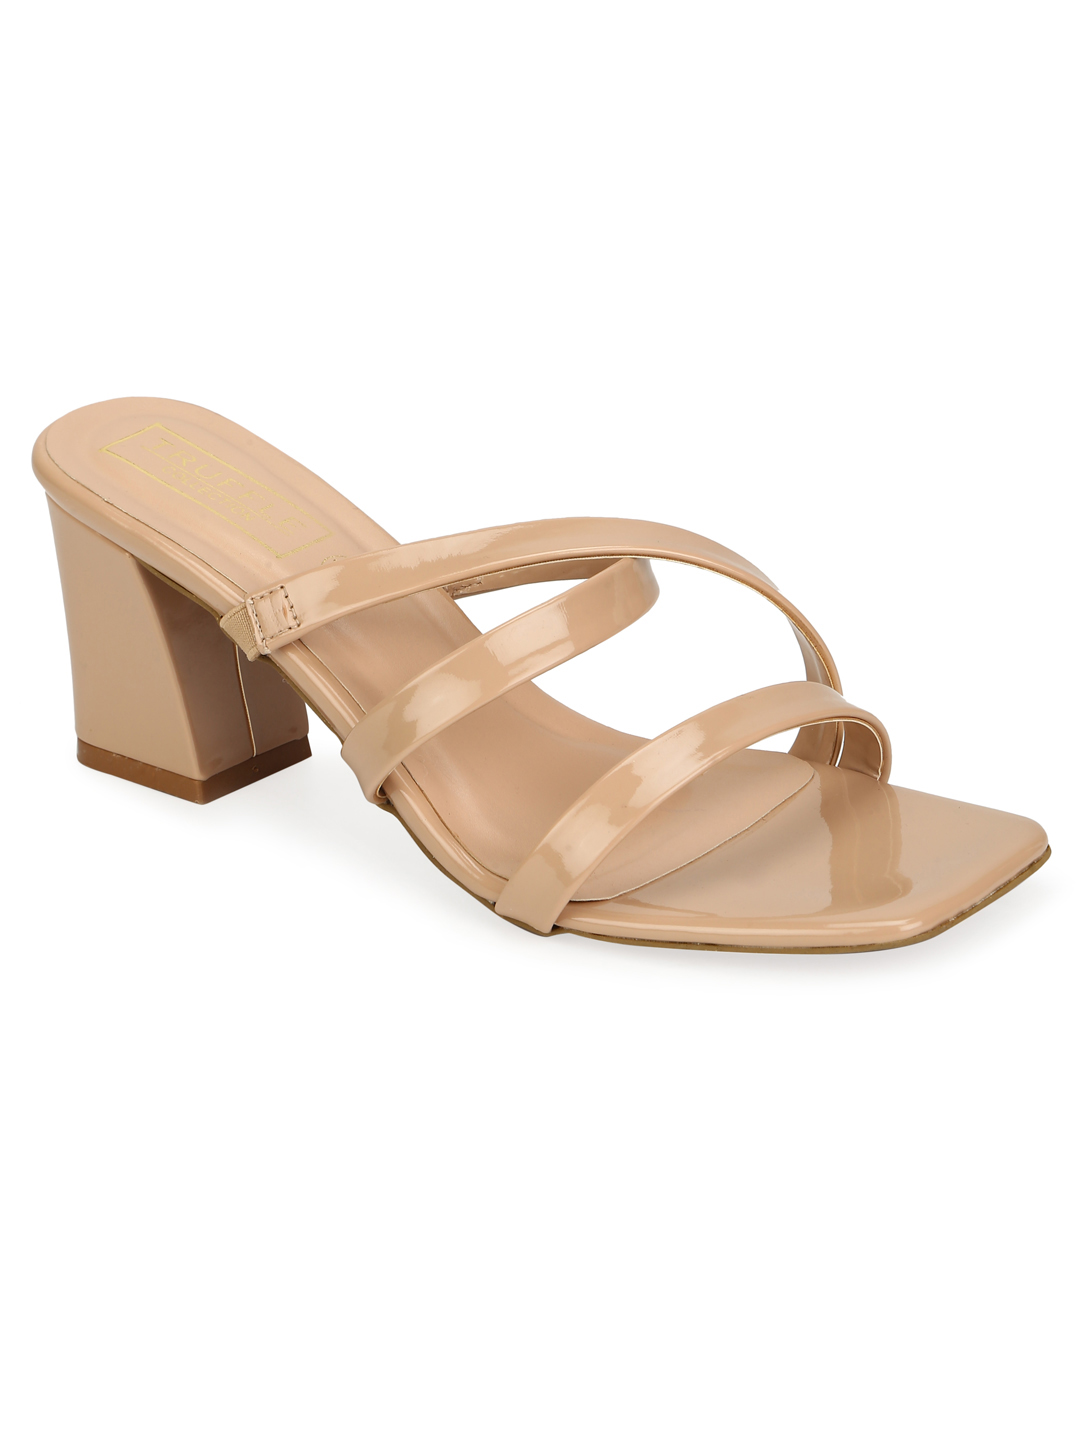 Truffle Collection | Truffle Collection Nude Patent Strappy Sandals